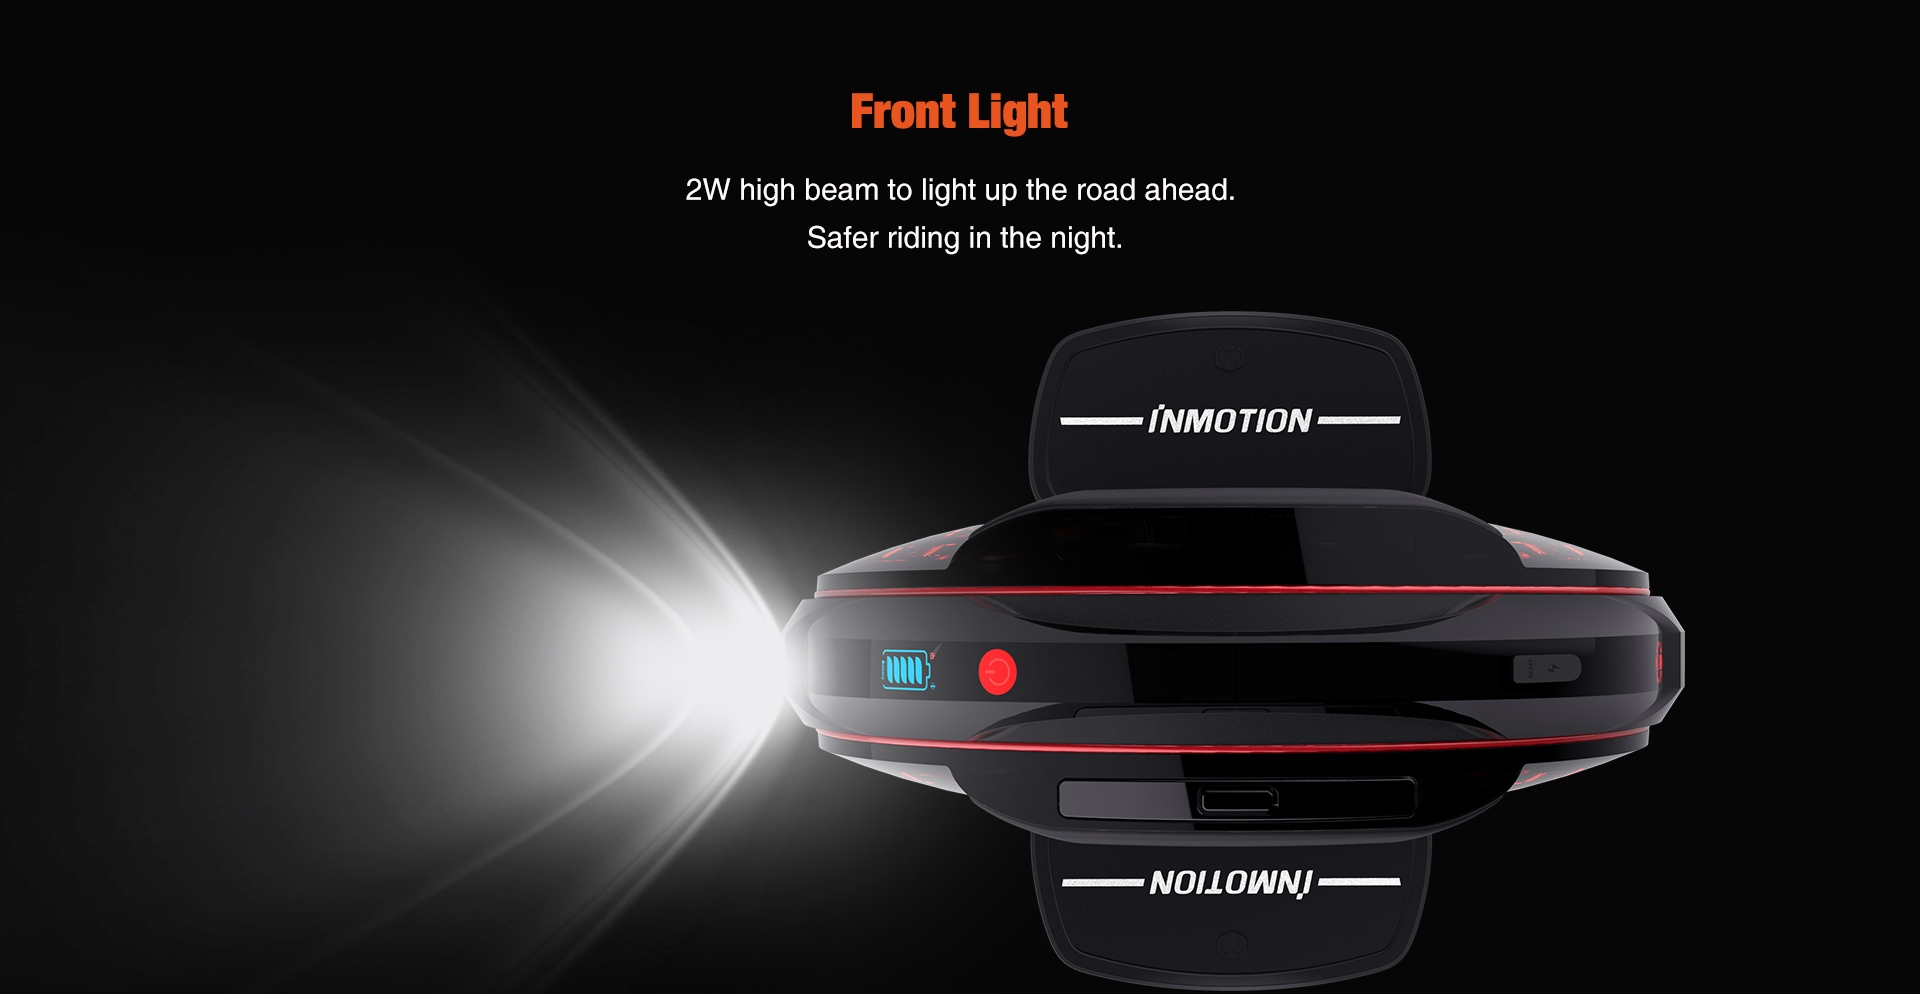 Inmotion V8F Brochure, Headlight